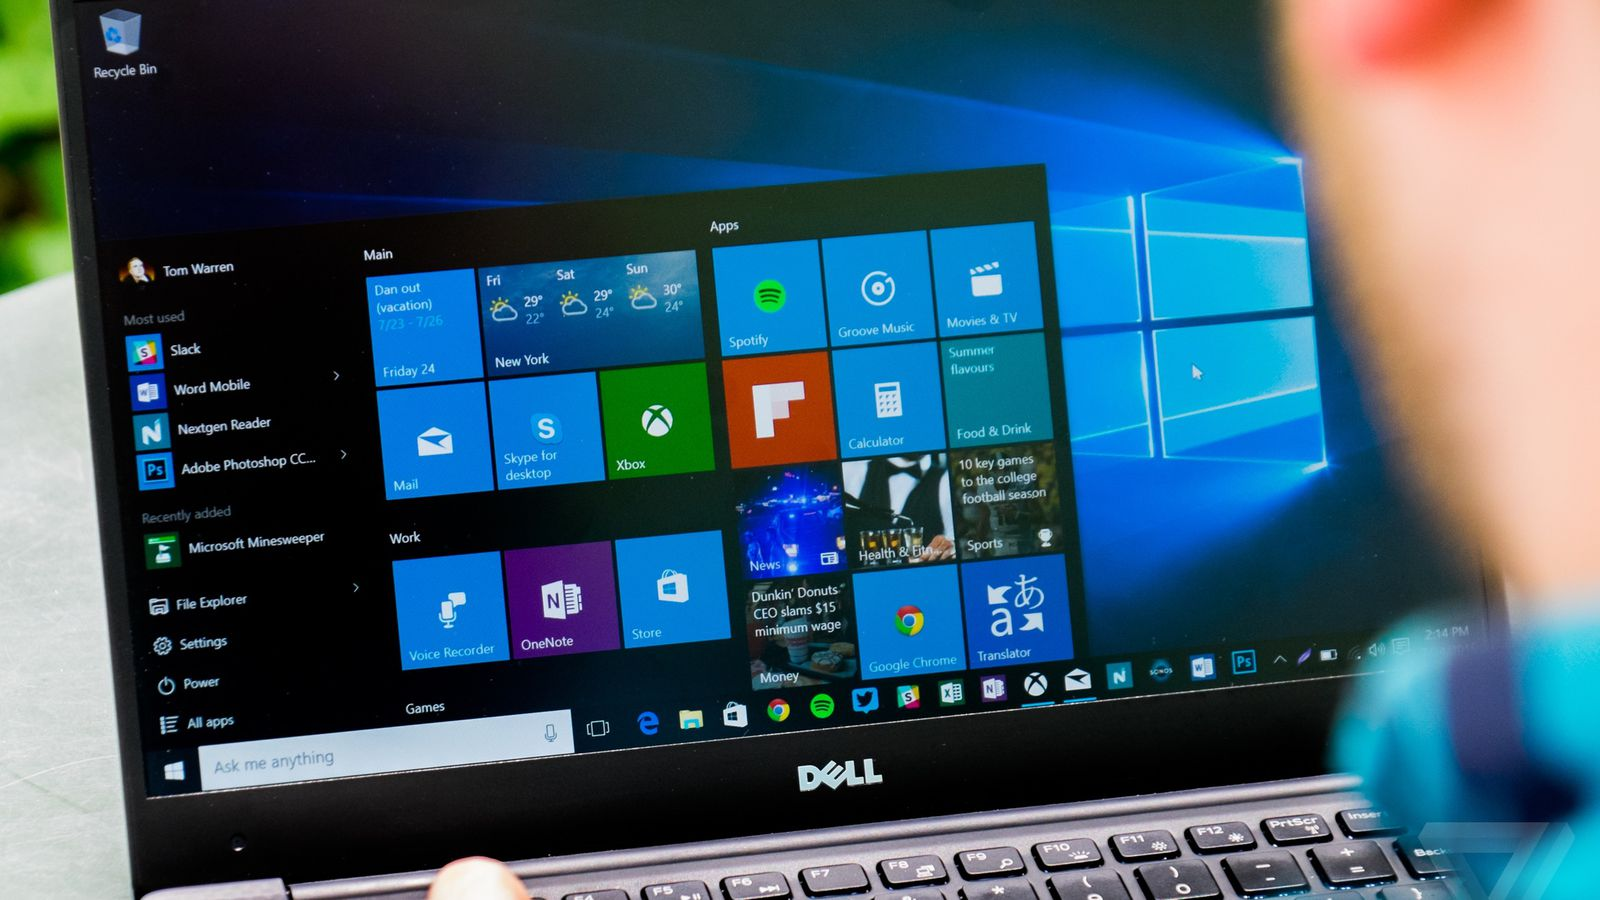 Looking back at Windows 8, it's easy to see where Microsoft went wrong. It was a giant bet on touch-based computing, but it made using a PC with a keyboard and mouse awkward, frustrating, and...